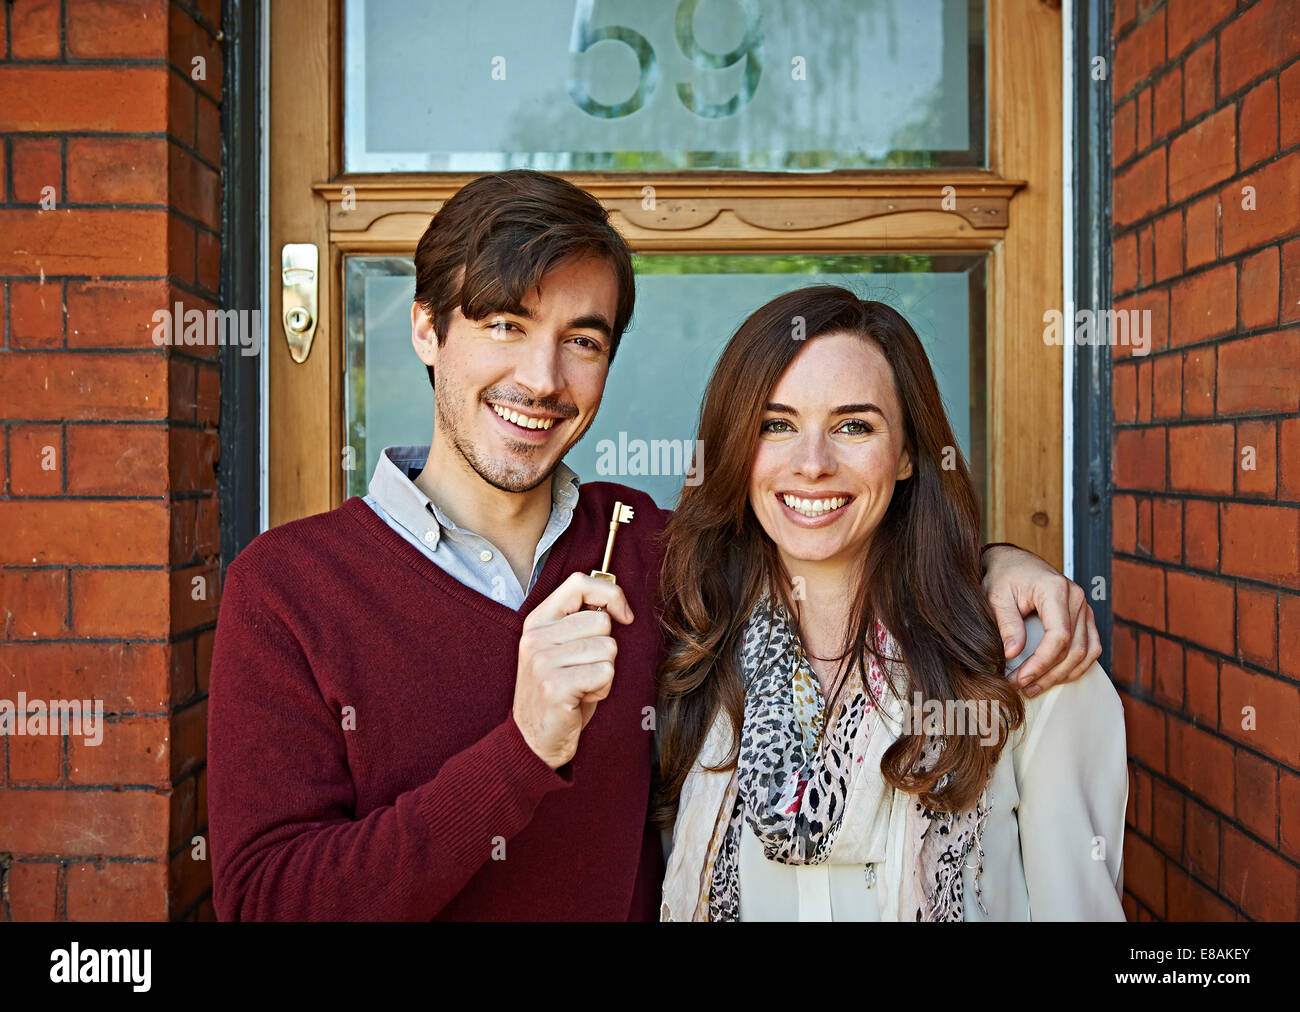 Couple delighted with key to house - Stock Image